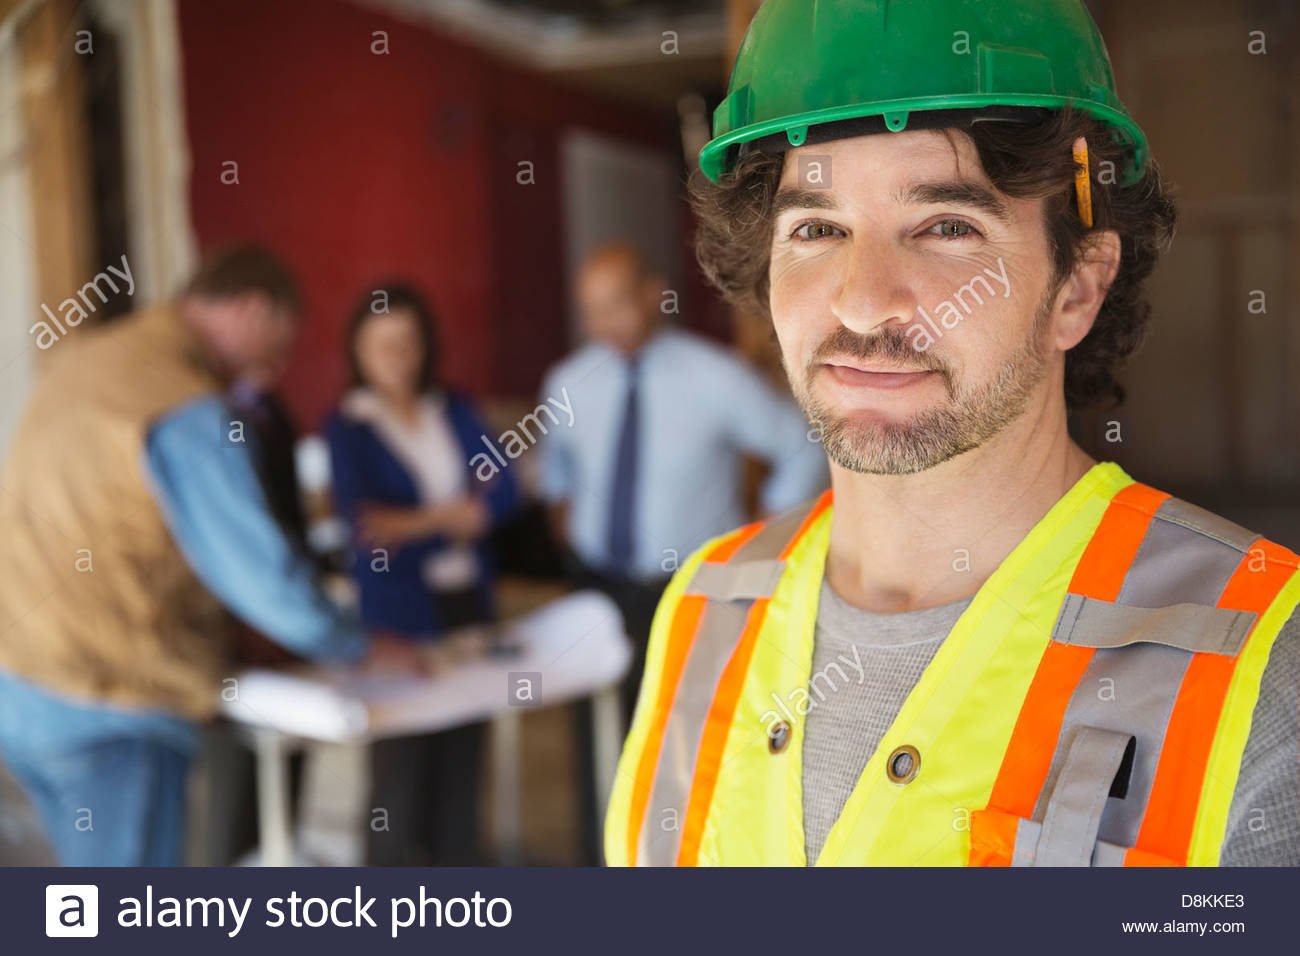 Portrait of tradesman with coworkers at construction site Stock Photo